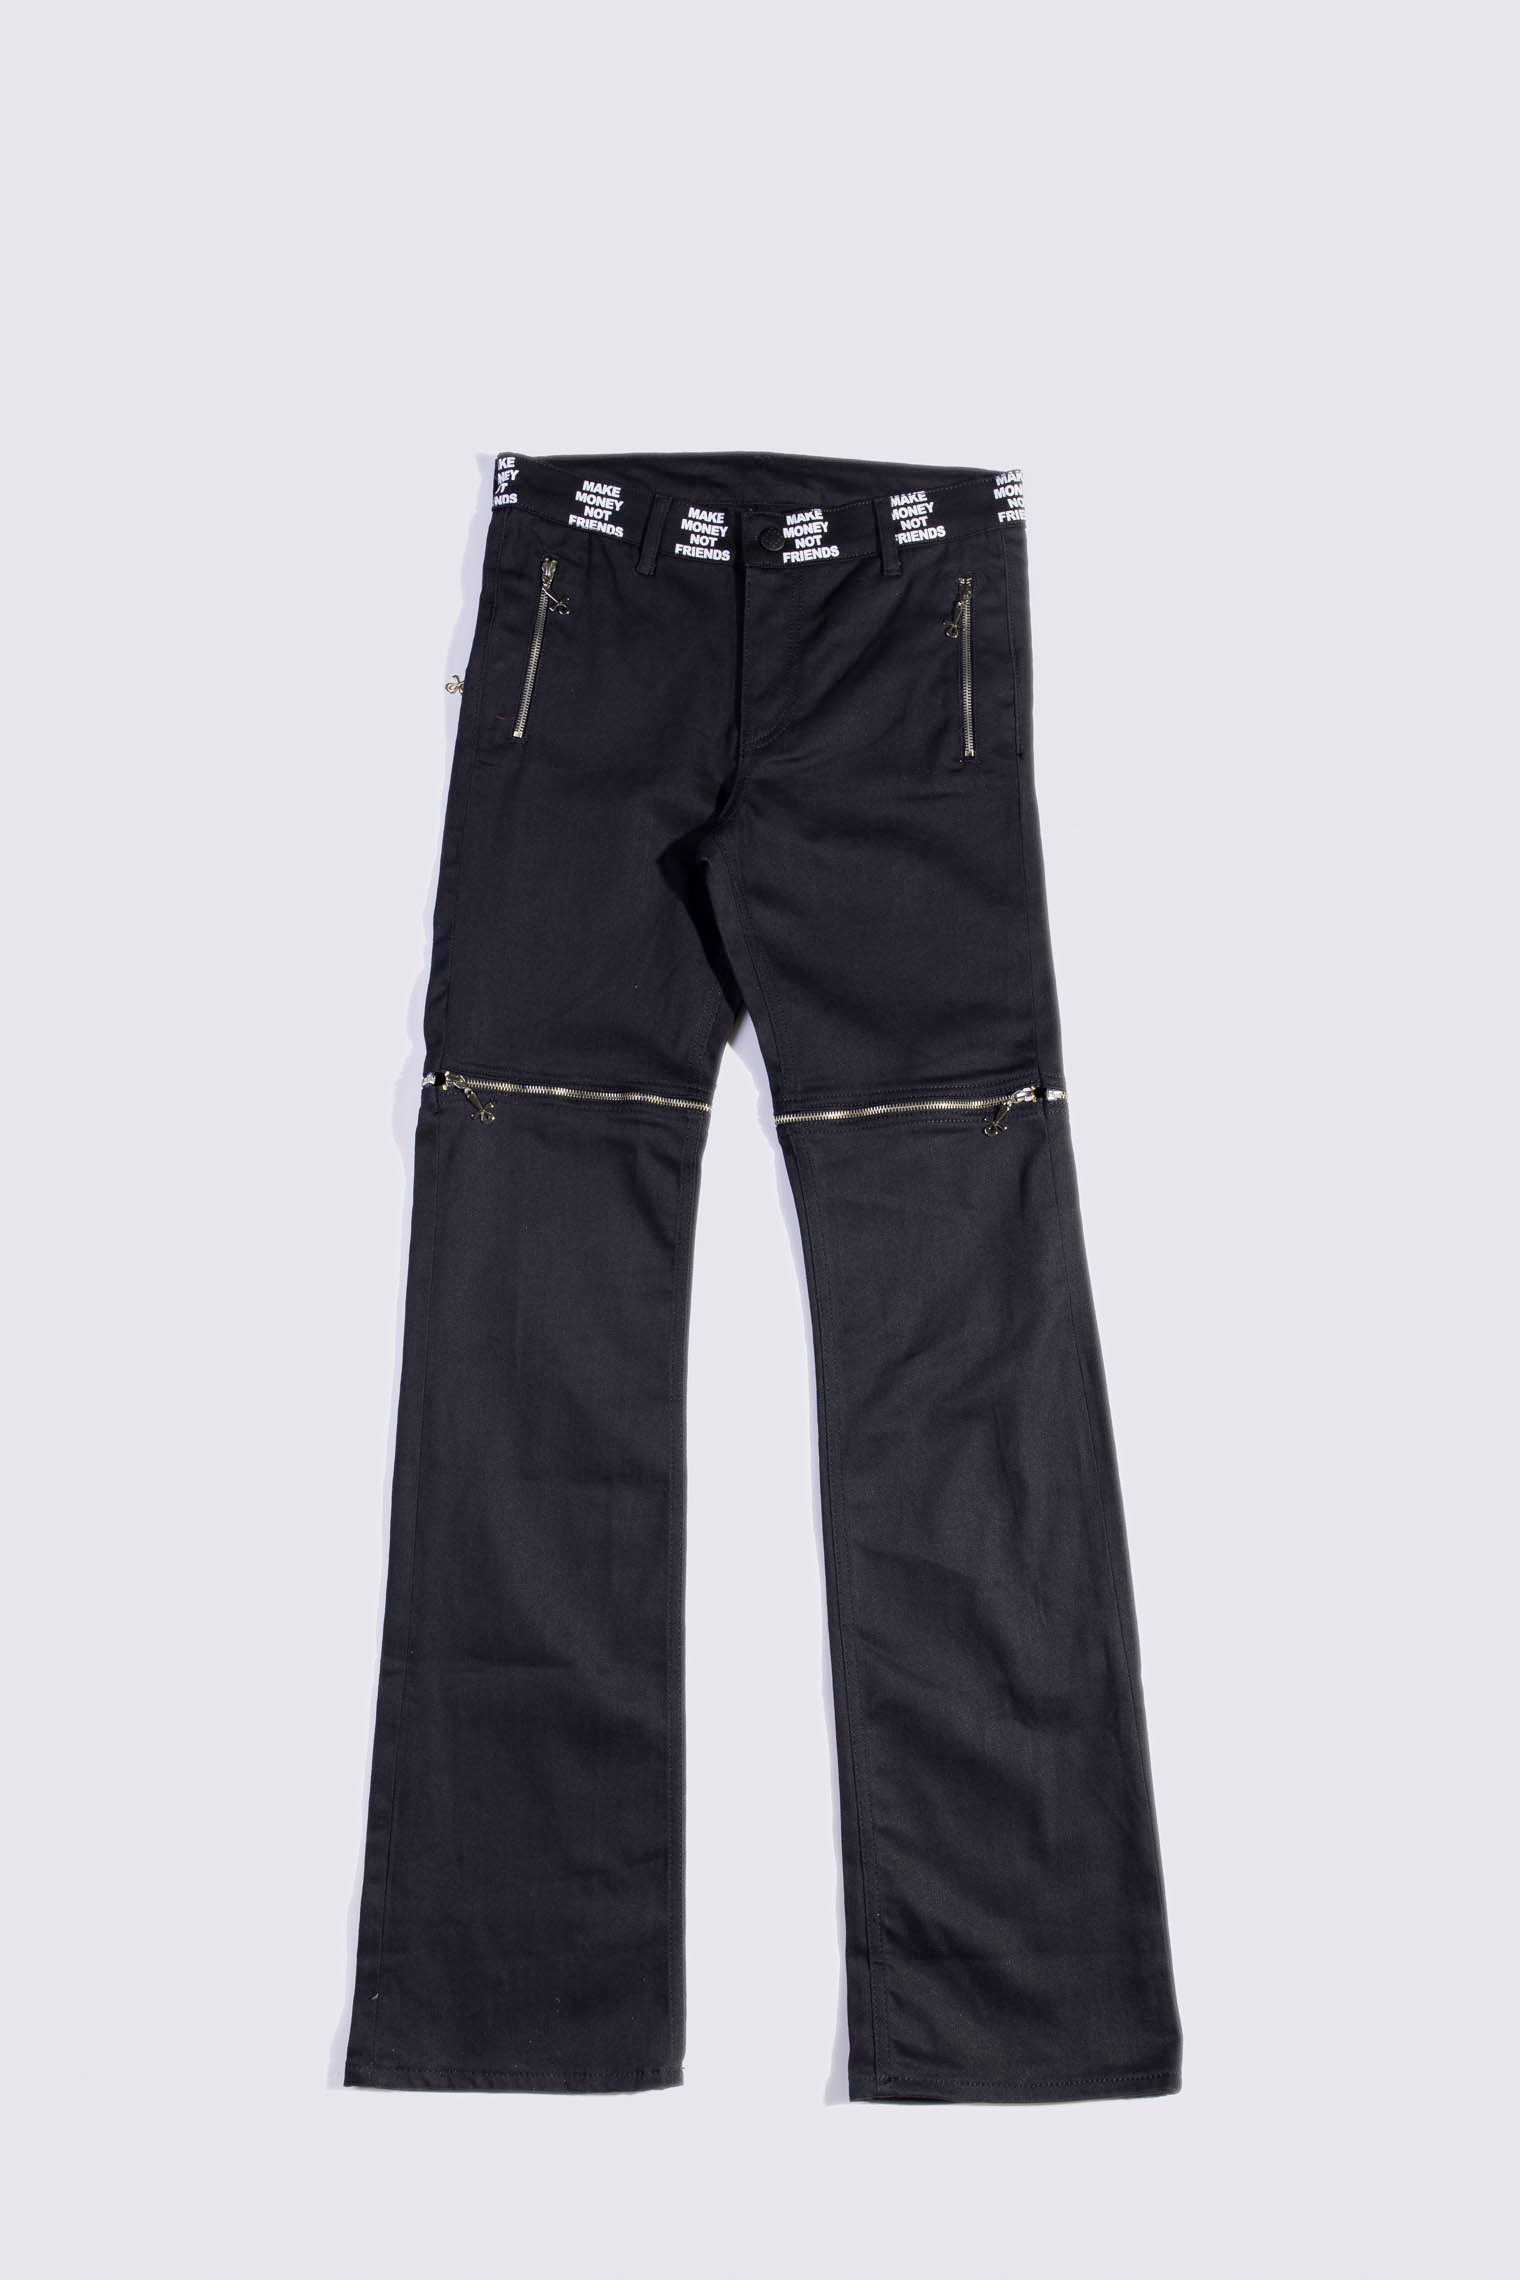 MAKE MONEY NOT FRIENDS PANTALONE ZIP NERO/NERO AE5